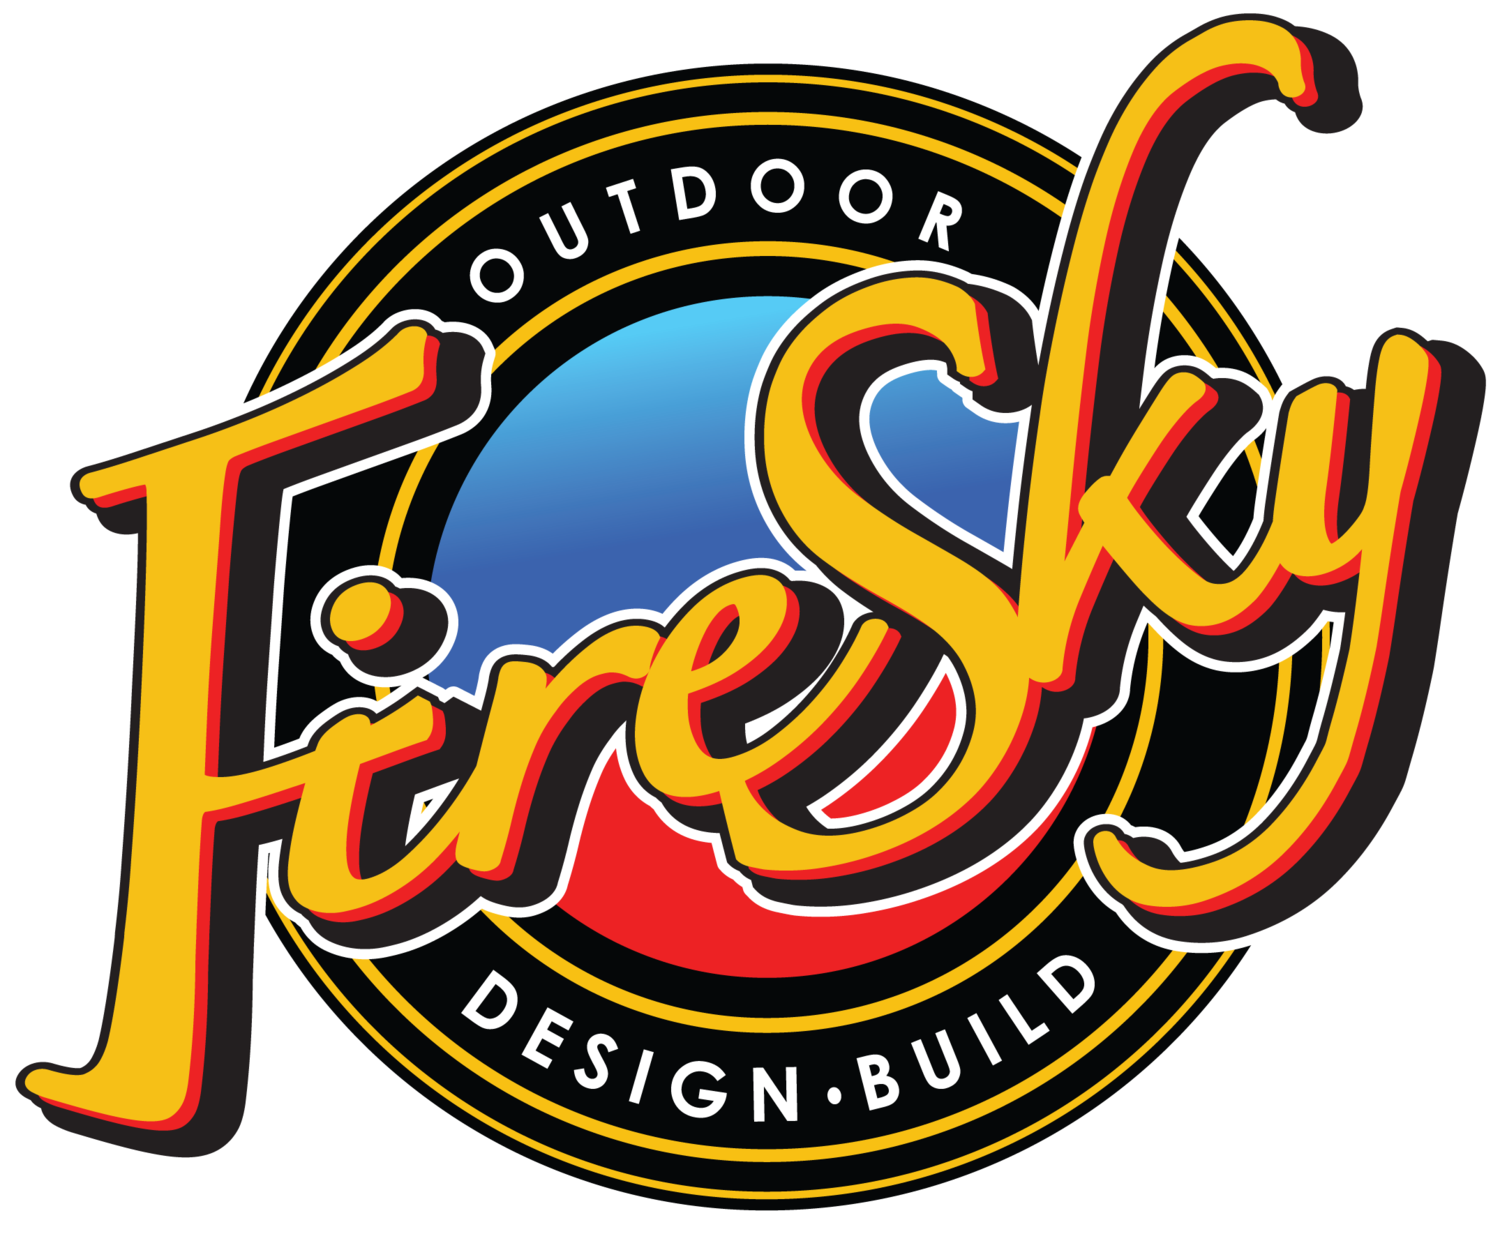 FireSky Outdoor: Designed by Landscape Architects, Built by Craftsmen